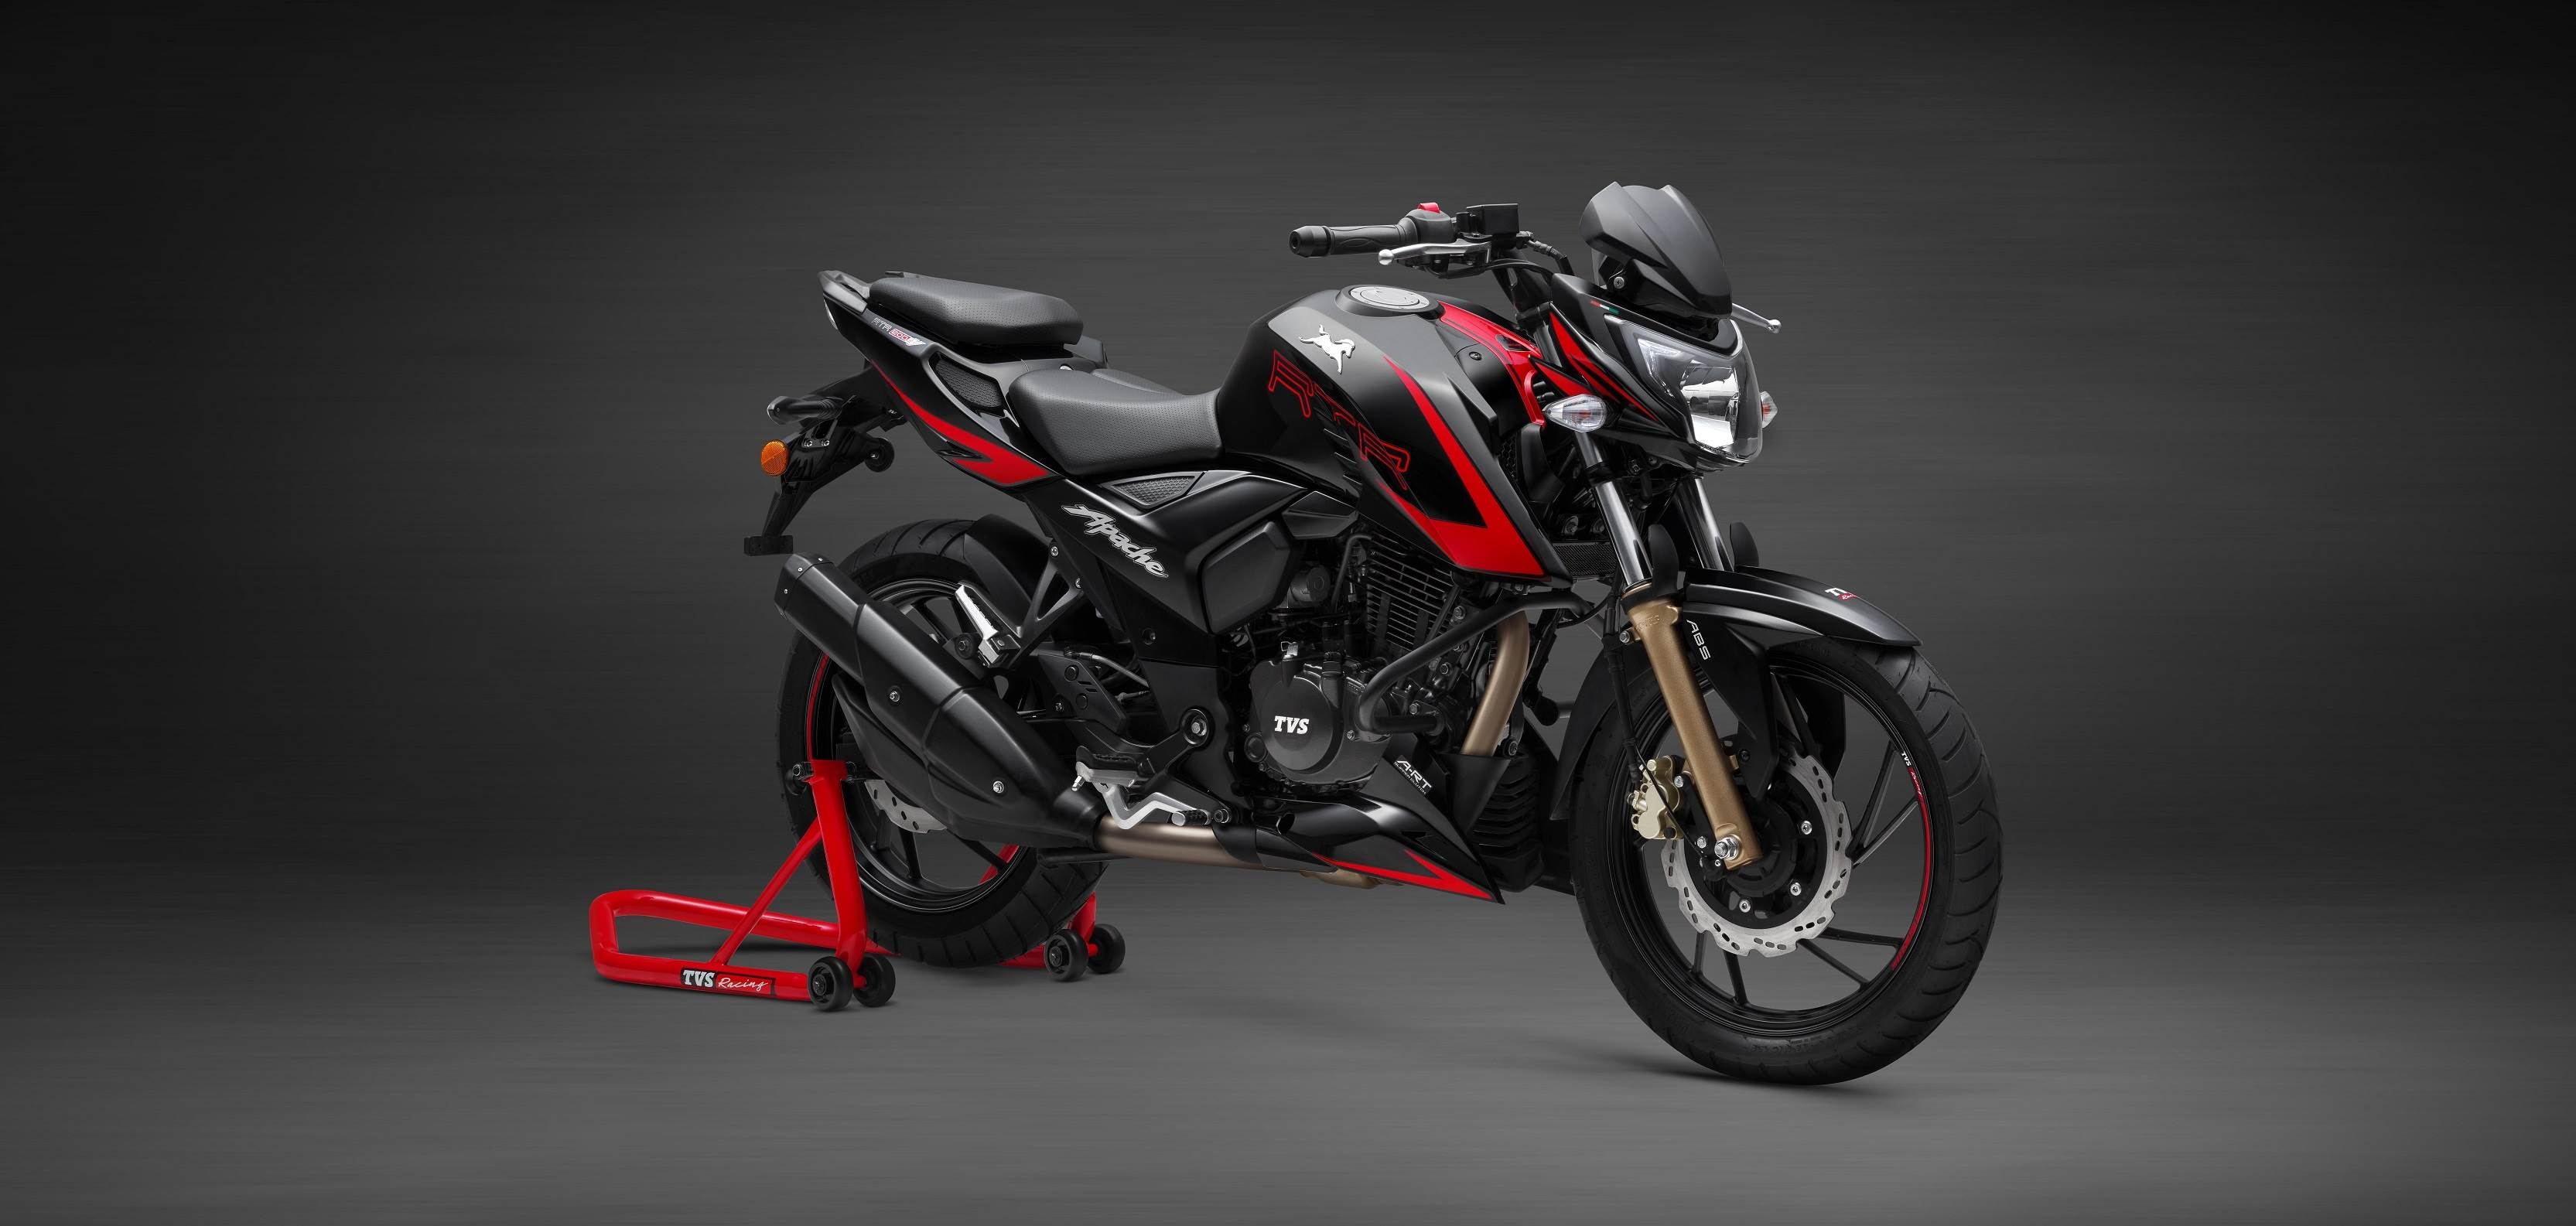 TVS Apache RTR 200 4V Race Edition 2.0 launched at Rs 95,185